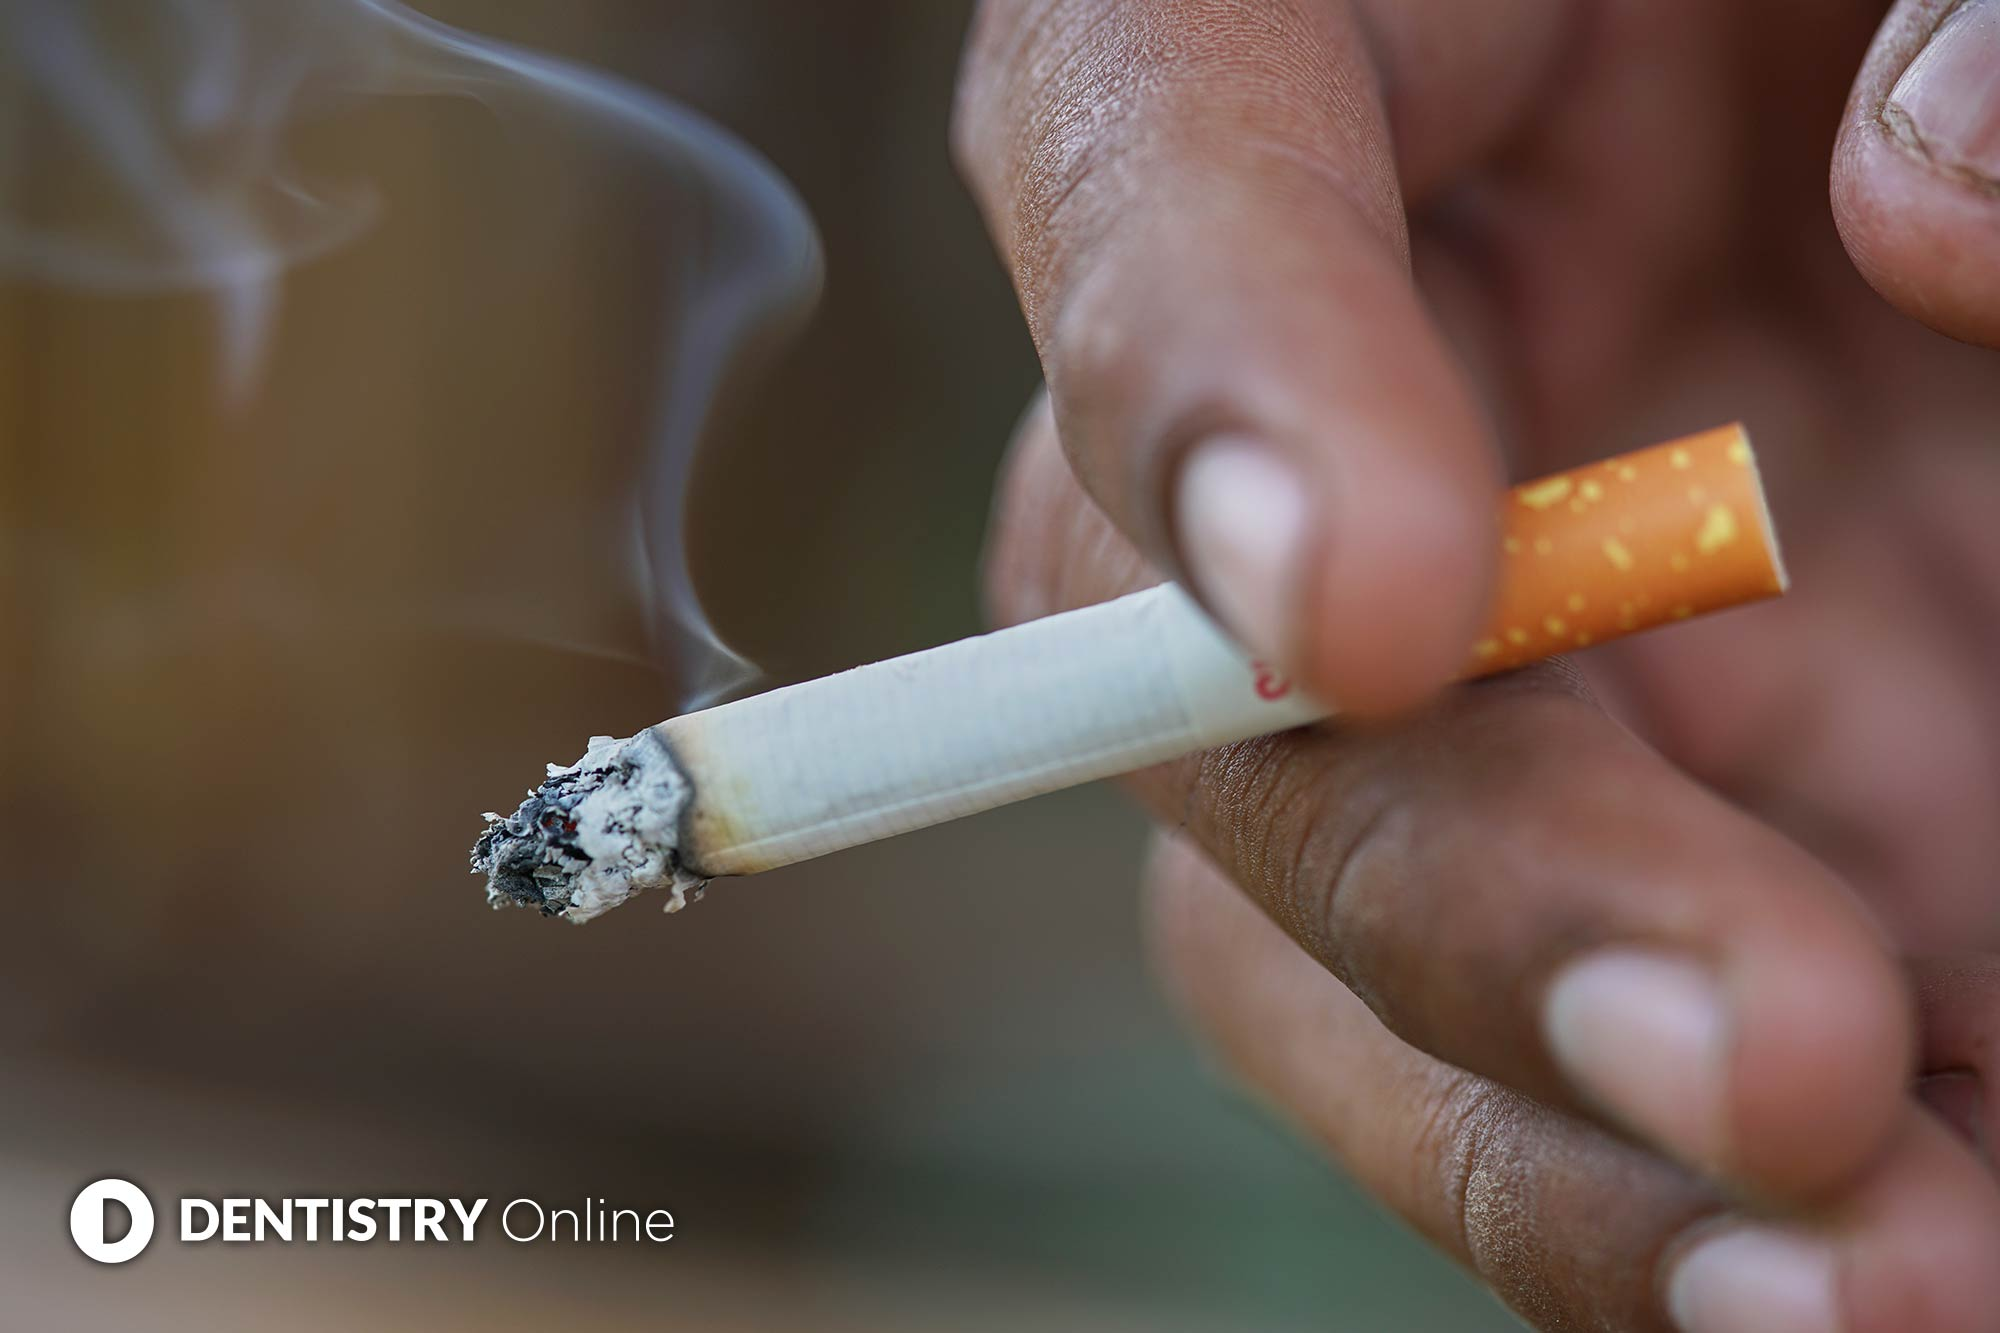 Eight in 10 adults over the age of 18 are set to make healthier changes, such as cutting back on smoking